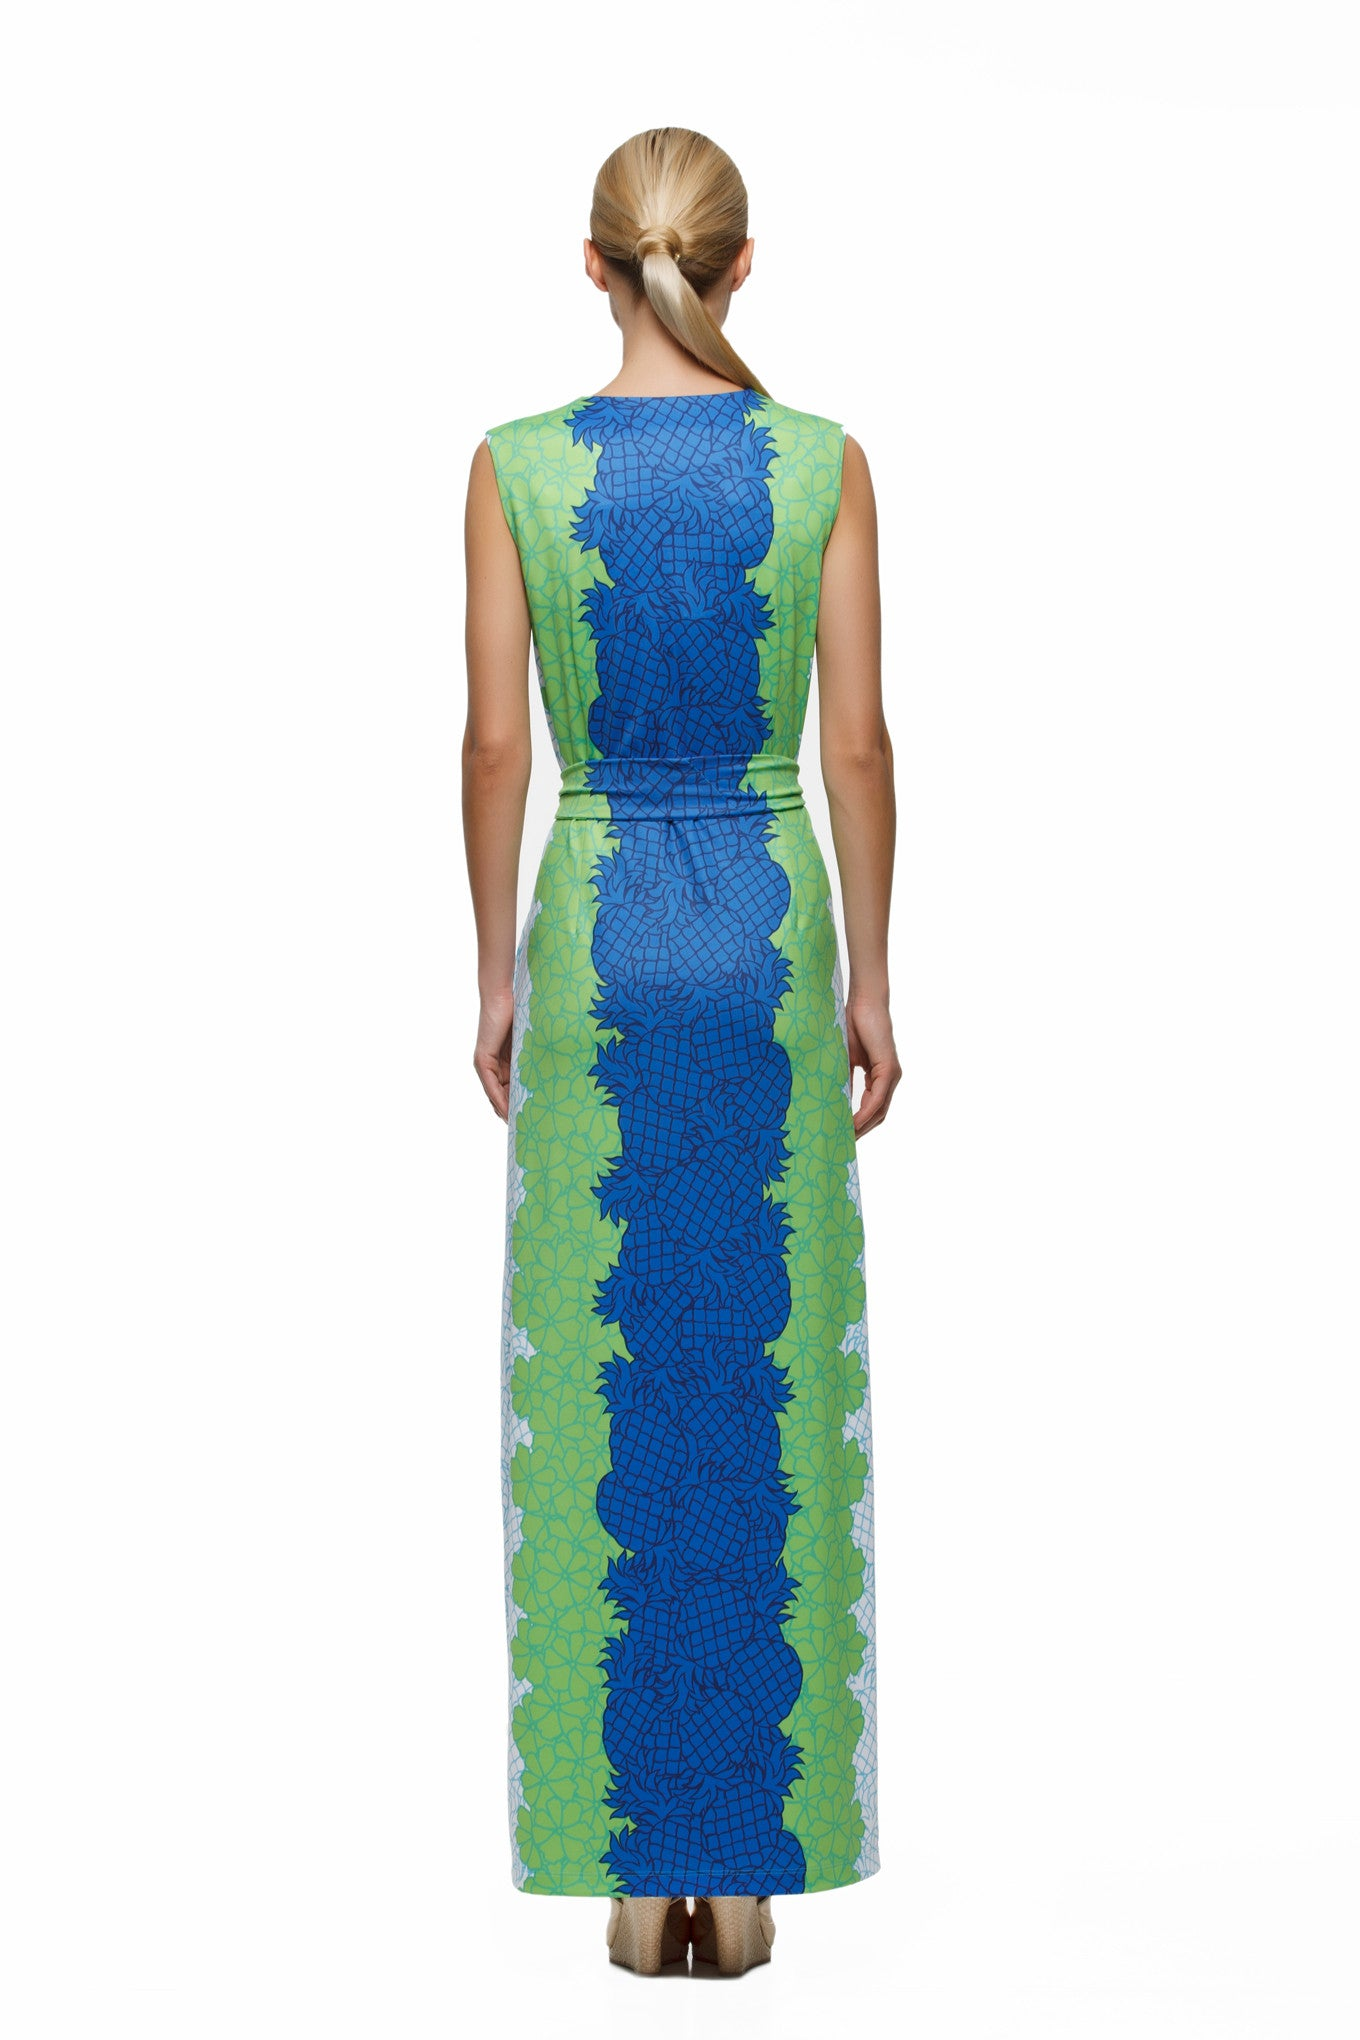 Morgan-womens-sleeveless-maxi-dress-with-matching-belt-in-pineapple-print-by-Rulon-Reed-rear-view